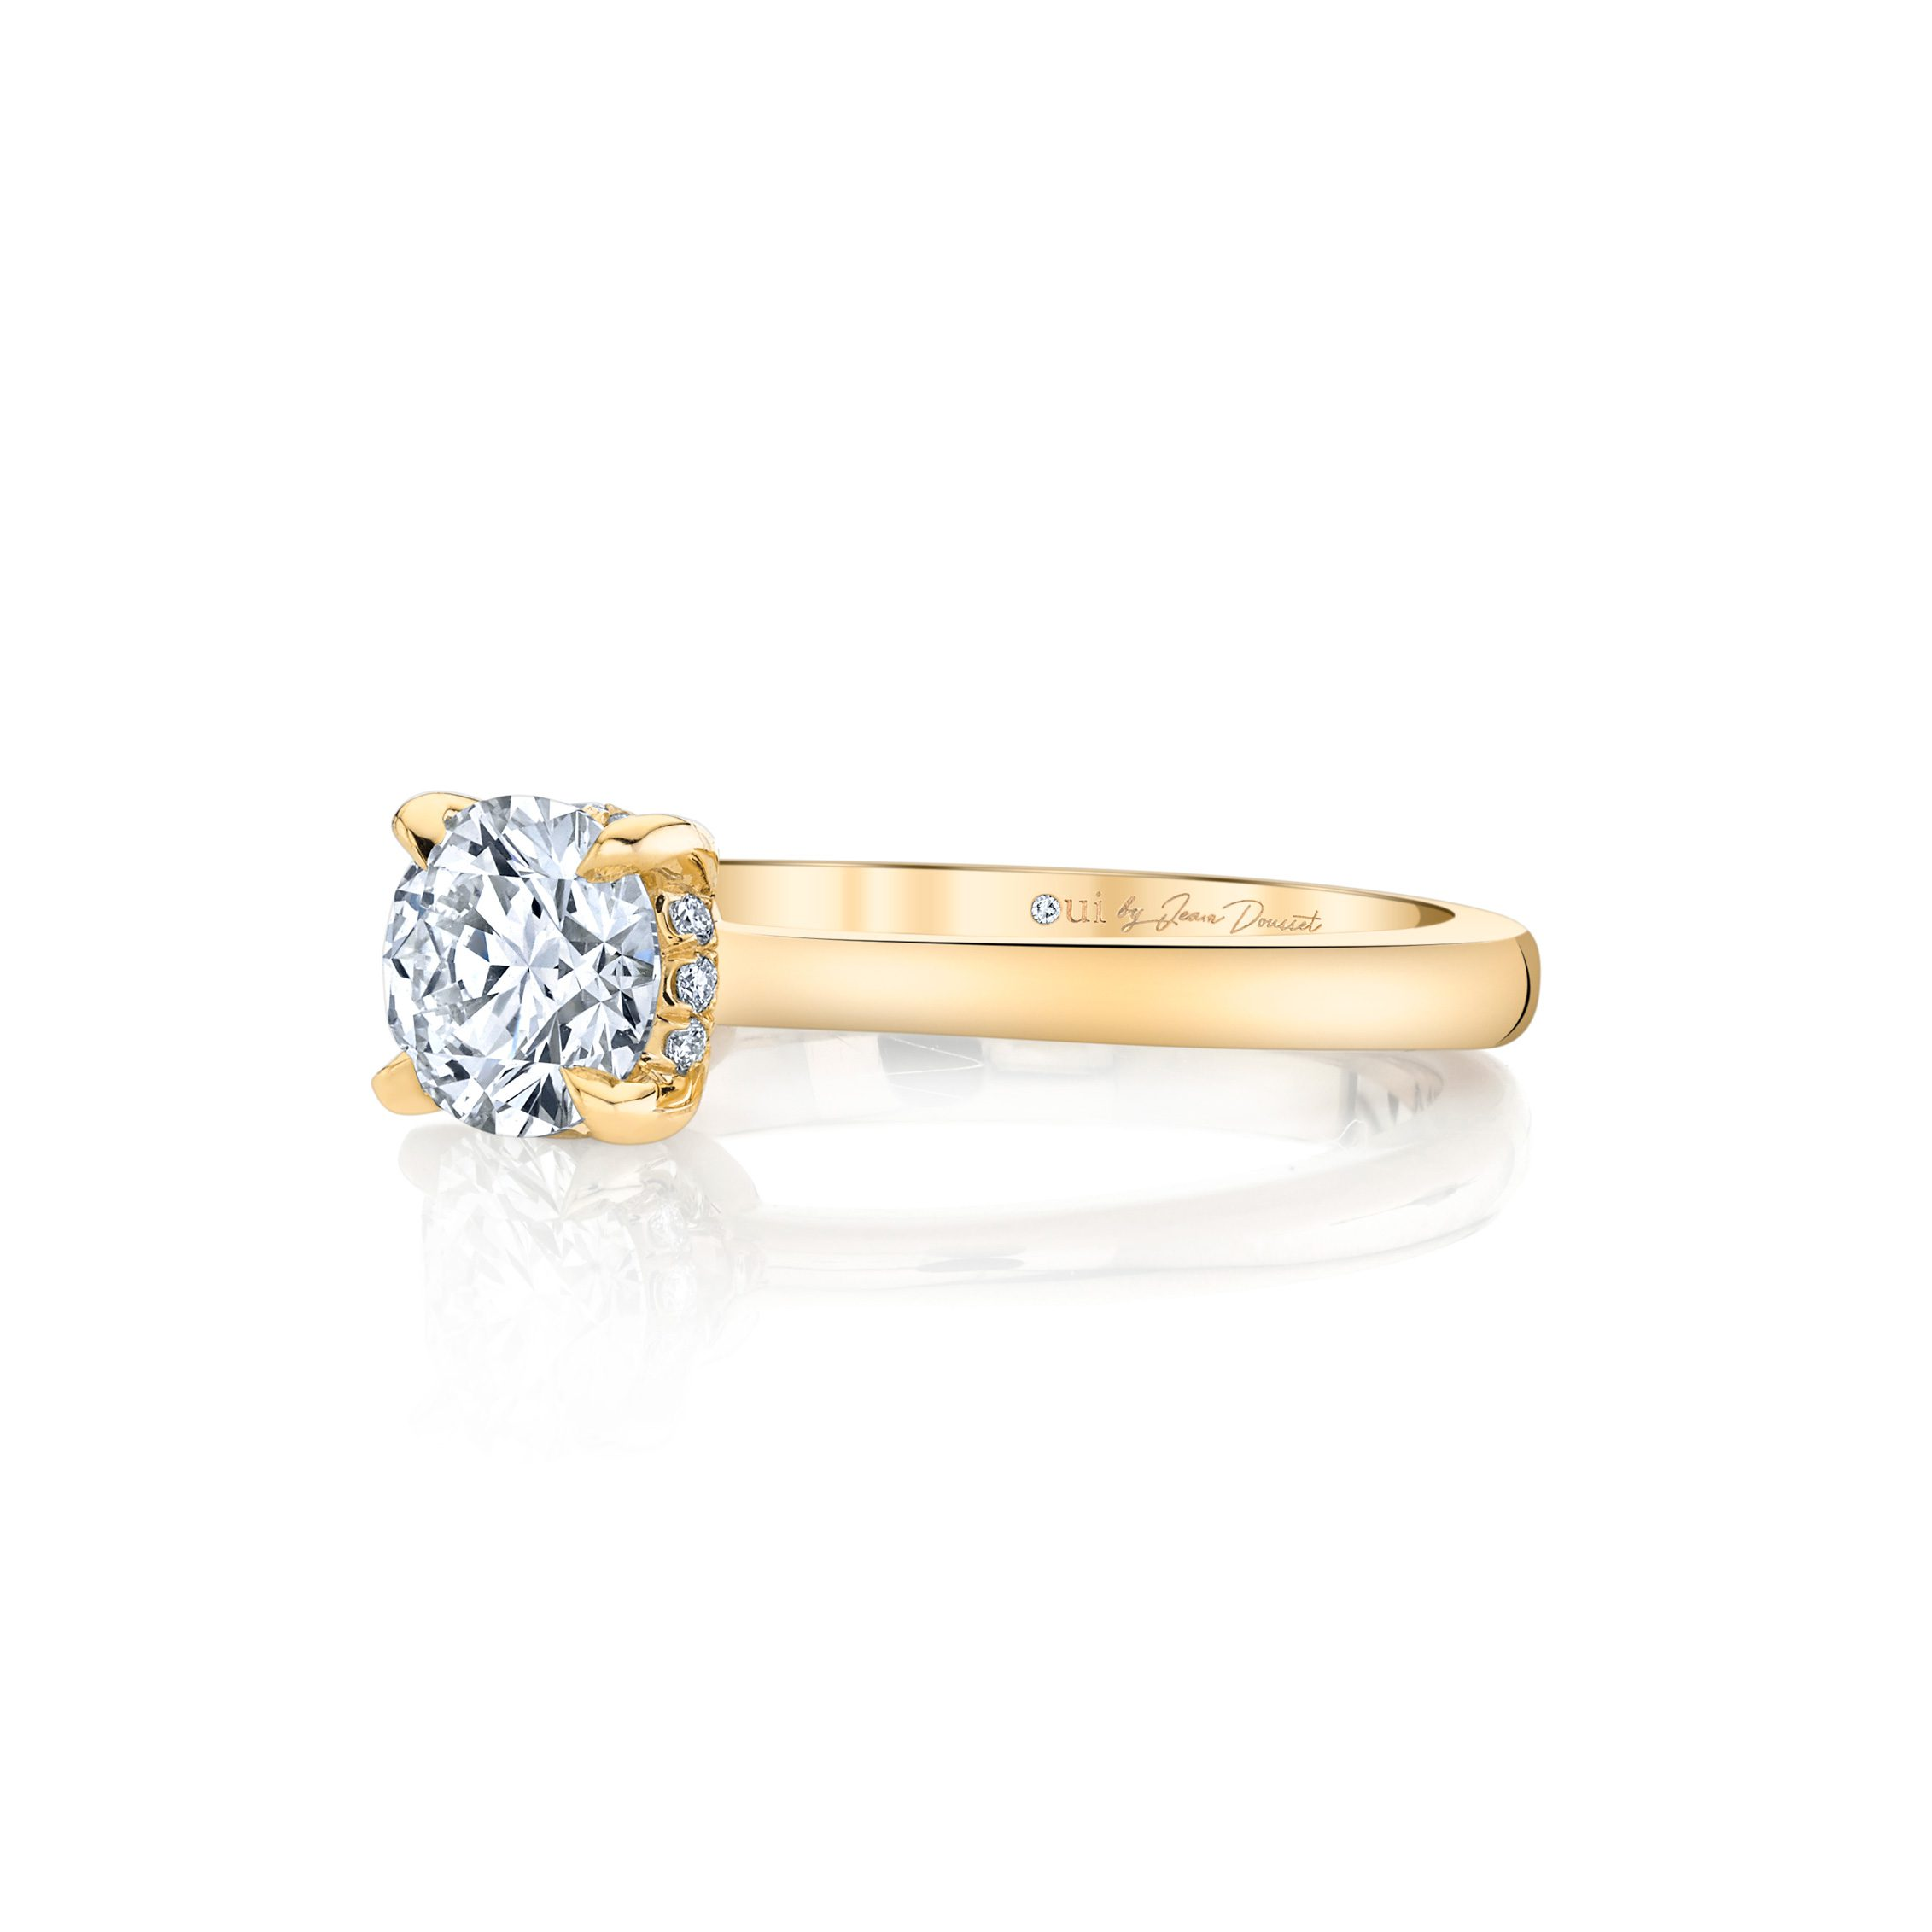 Colette Round Brilliant Solitaire Engagement Ring with a sold band in 18k Yellow Gold Side View by Oui by Jean Dousset